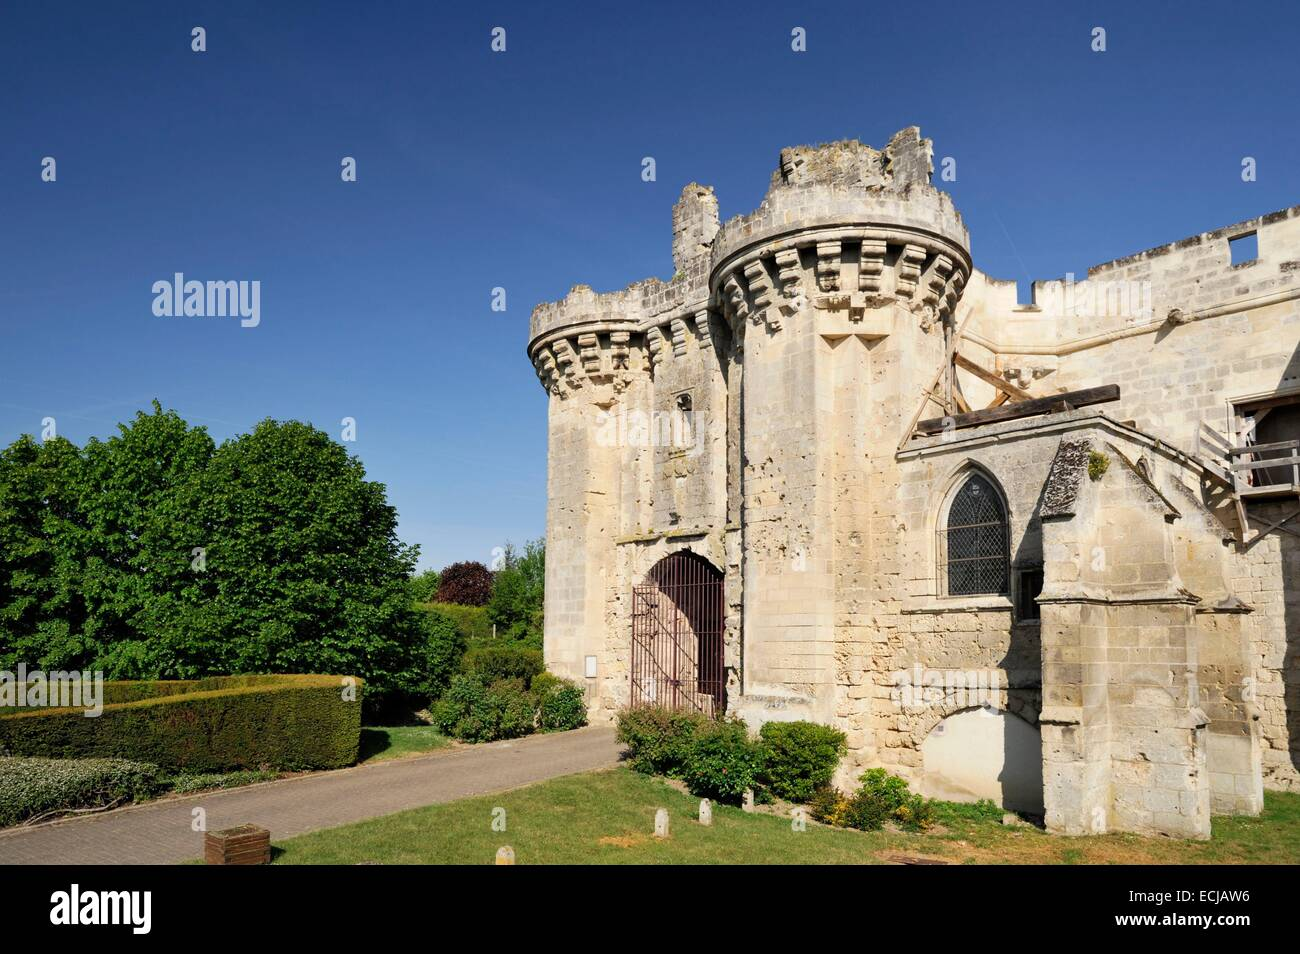 France, Aisne, Berzy le Sec, ruins of the castle built in the 13th century - Stock Image